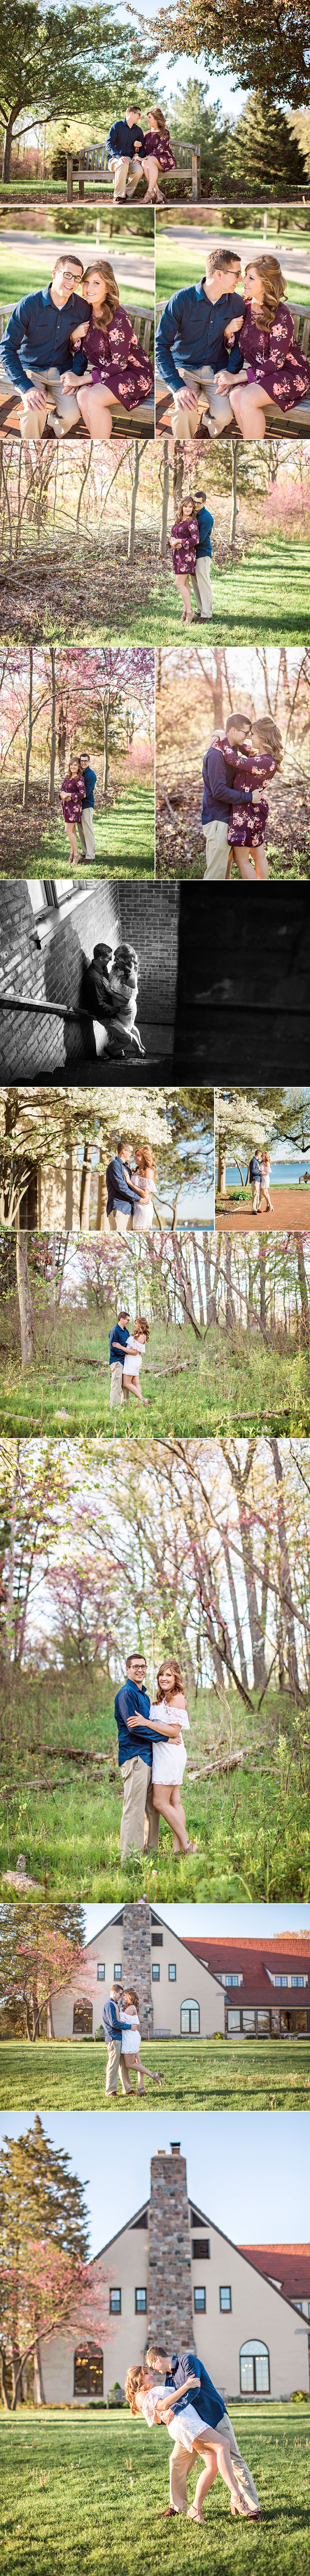 engagement - engaged - love - pokagon state park